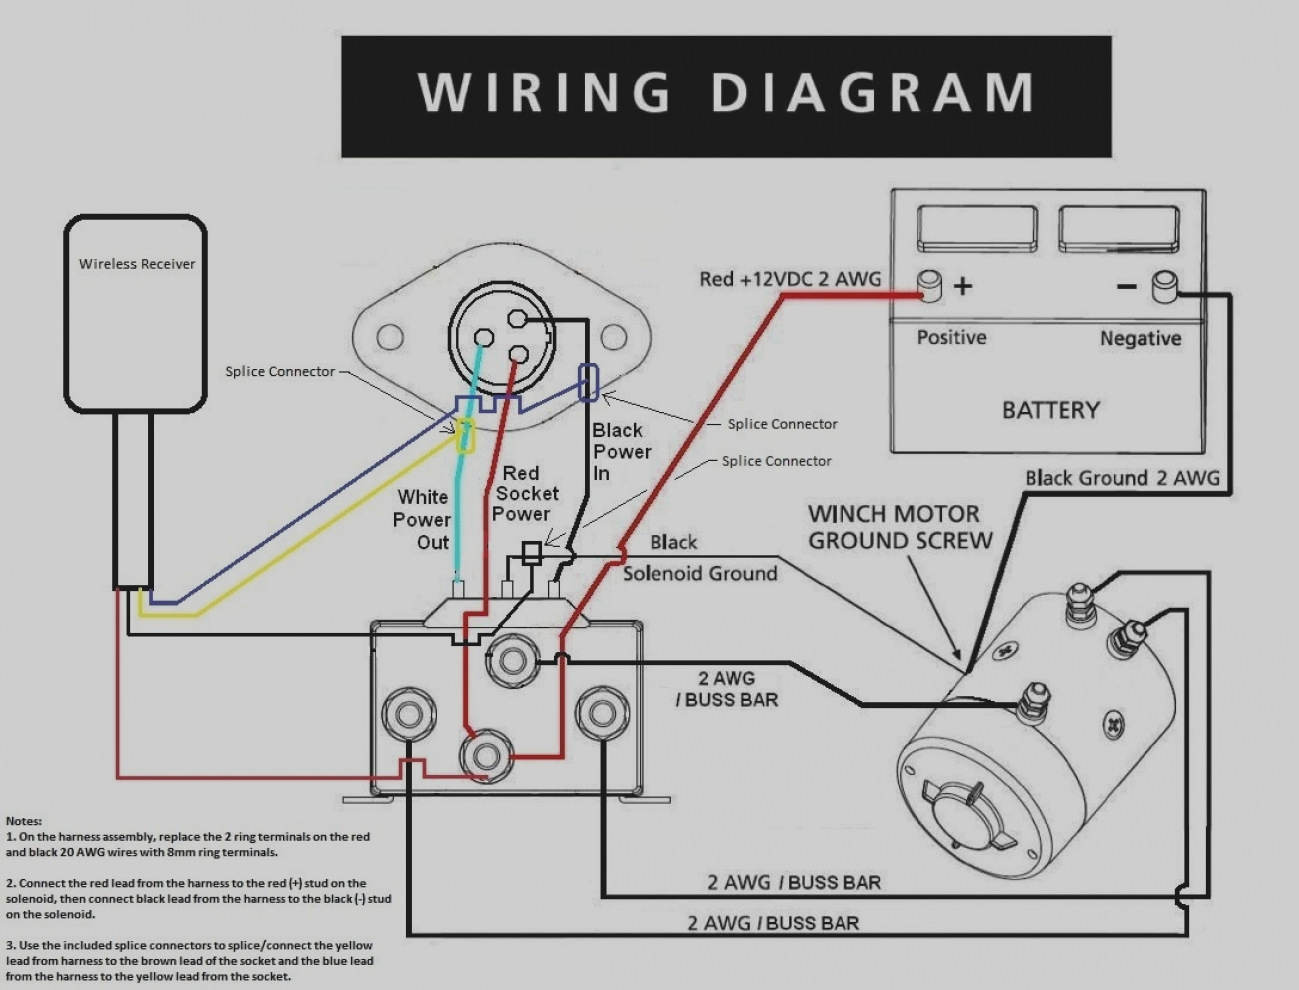 badland winch wiring diagram 3500 badland wireless winch remote control wiring diagram ... badland winch wire diagram 120 volts